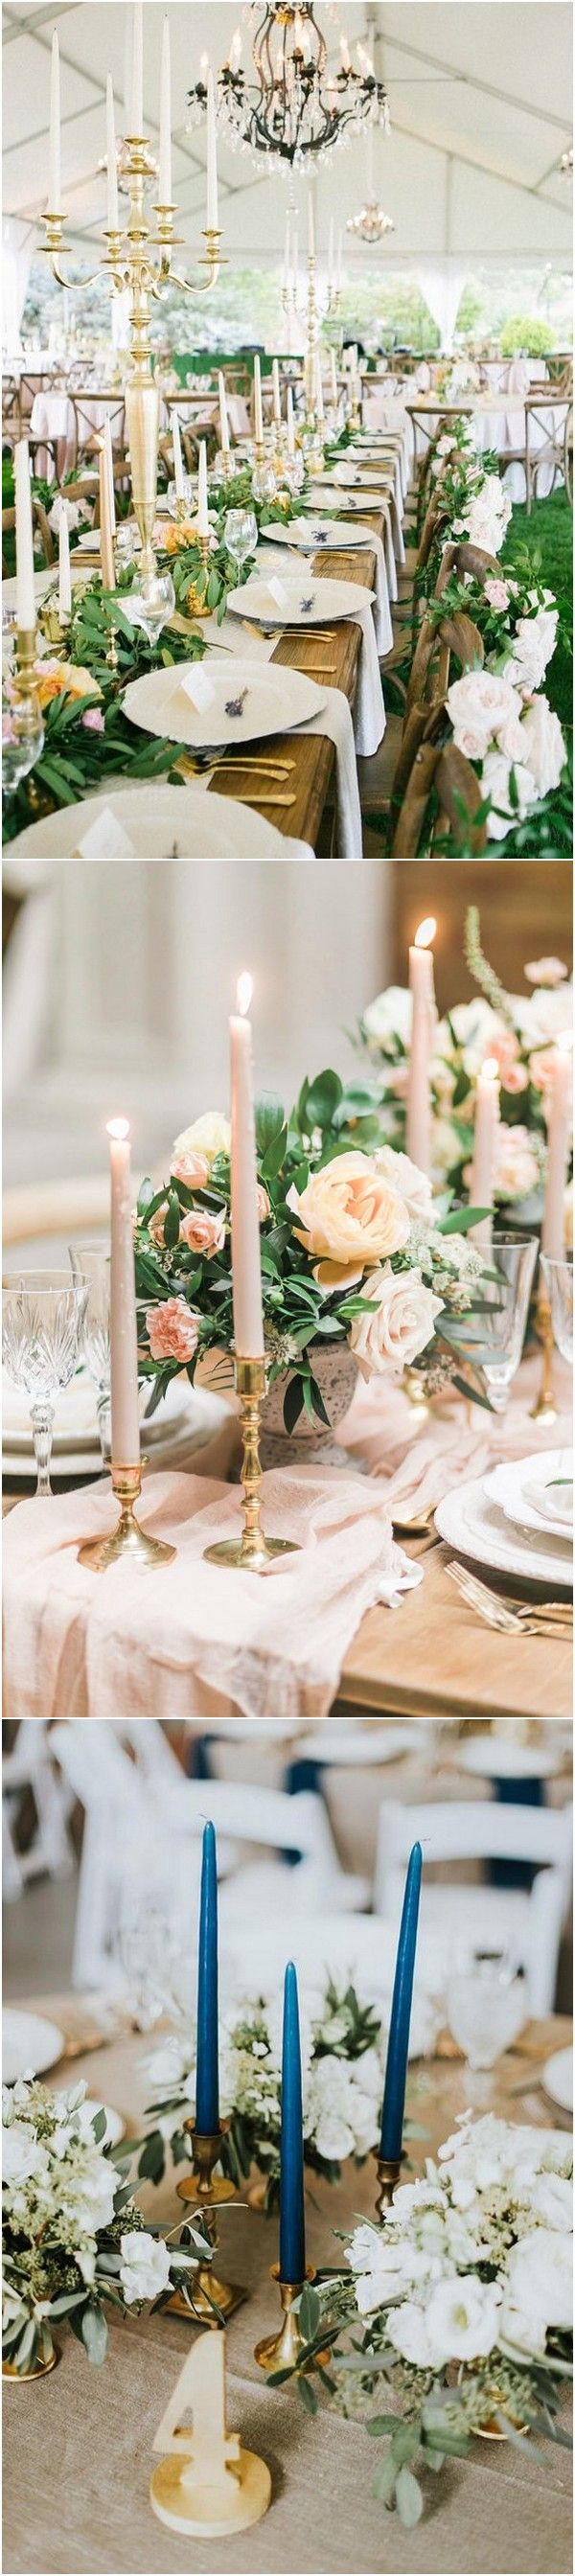 Wedding decorations for outside january 2019 Trending  Fabulous Wedding Table Decoration Ideas with Taper